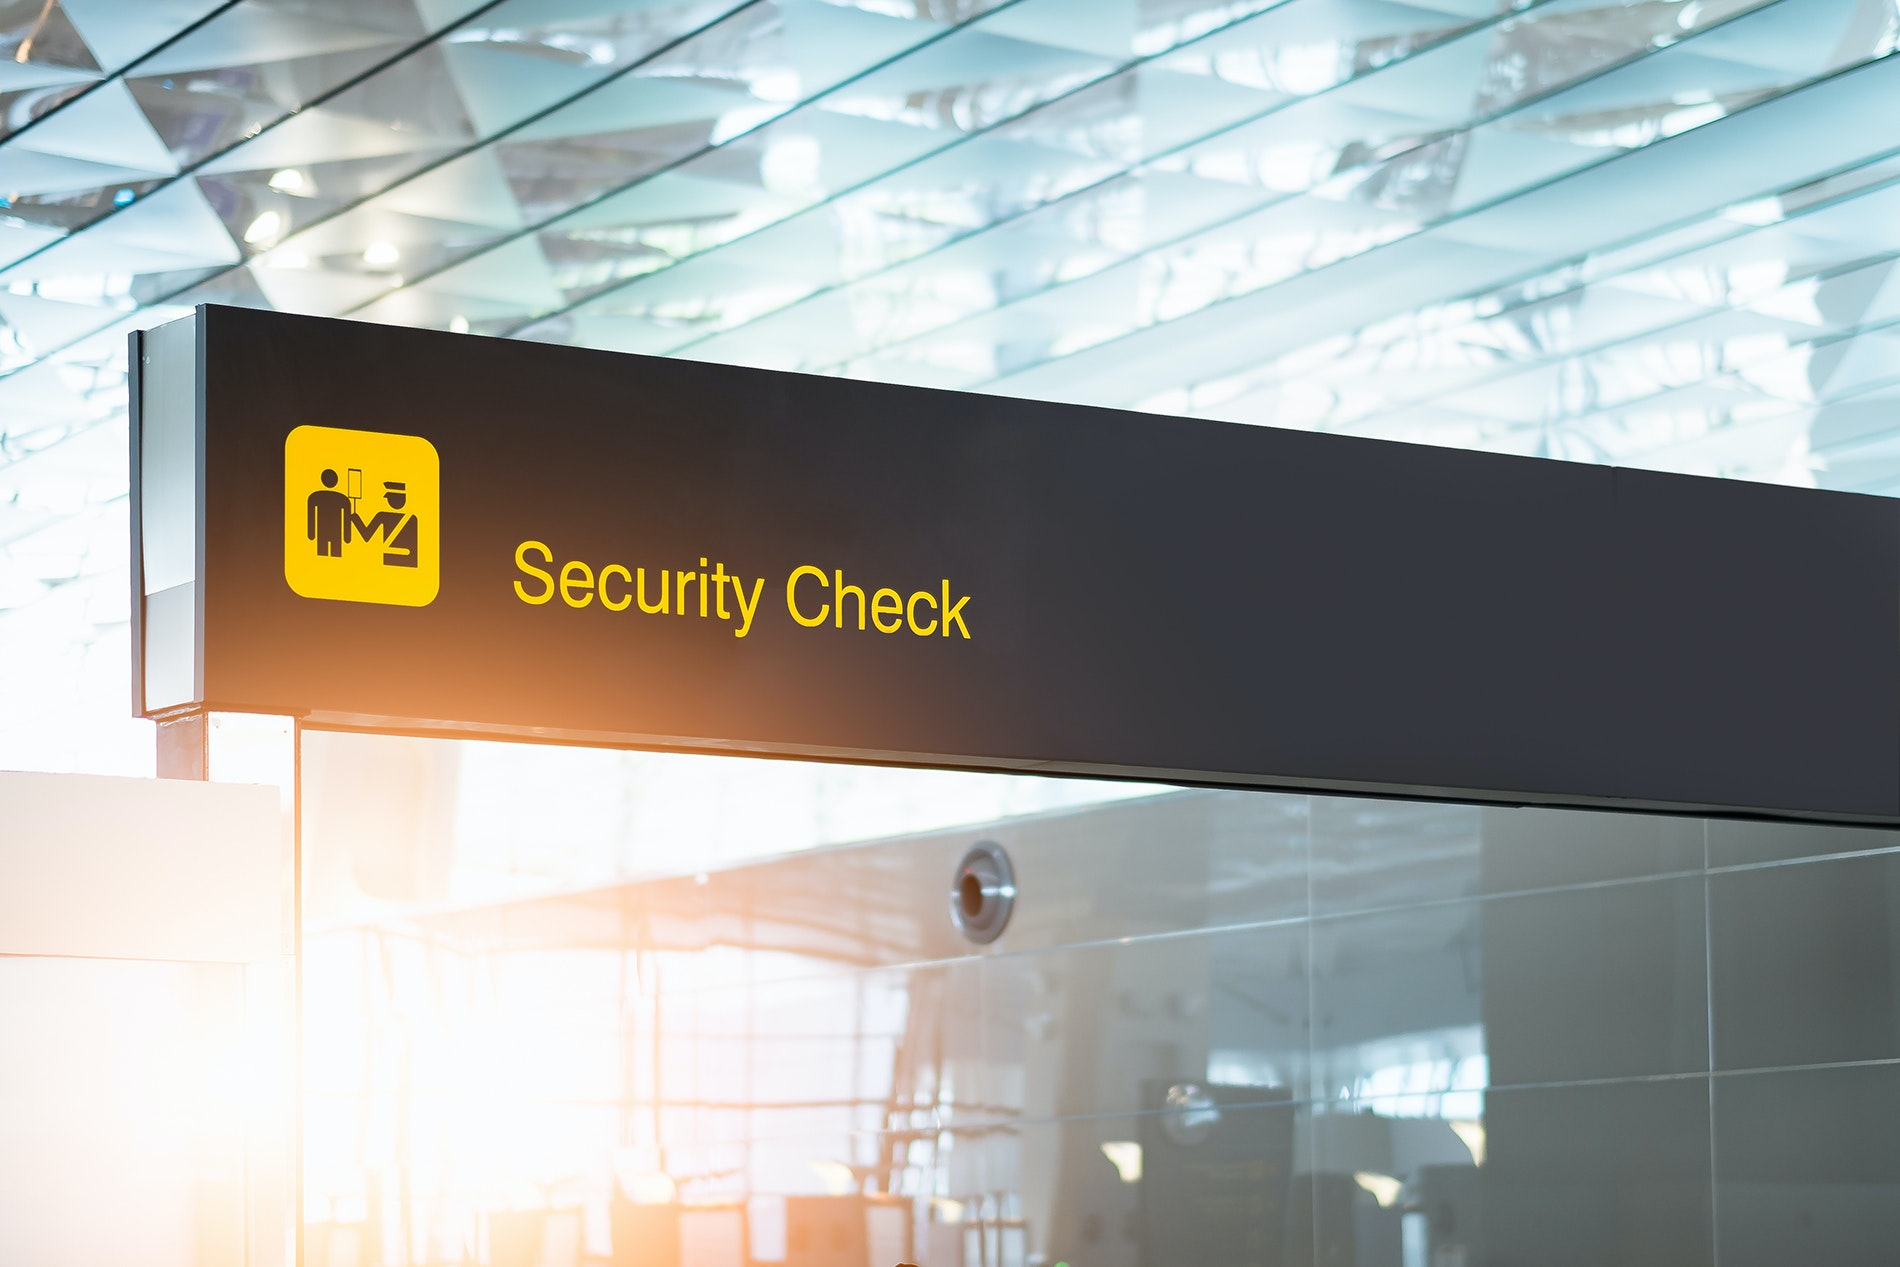 Once you're approved for TSA PreCheck, there are a few guidelines to know about when you can—and can't—use it.